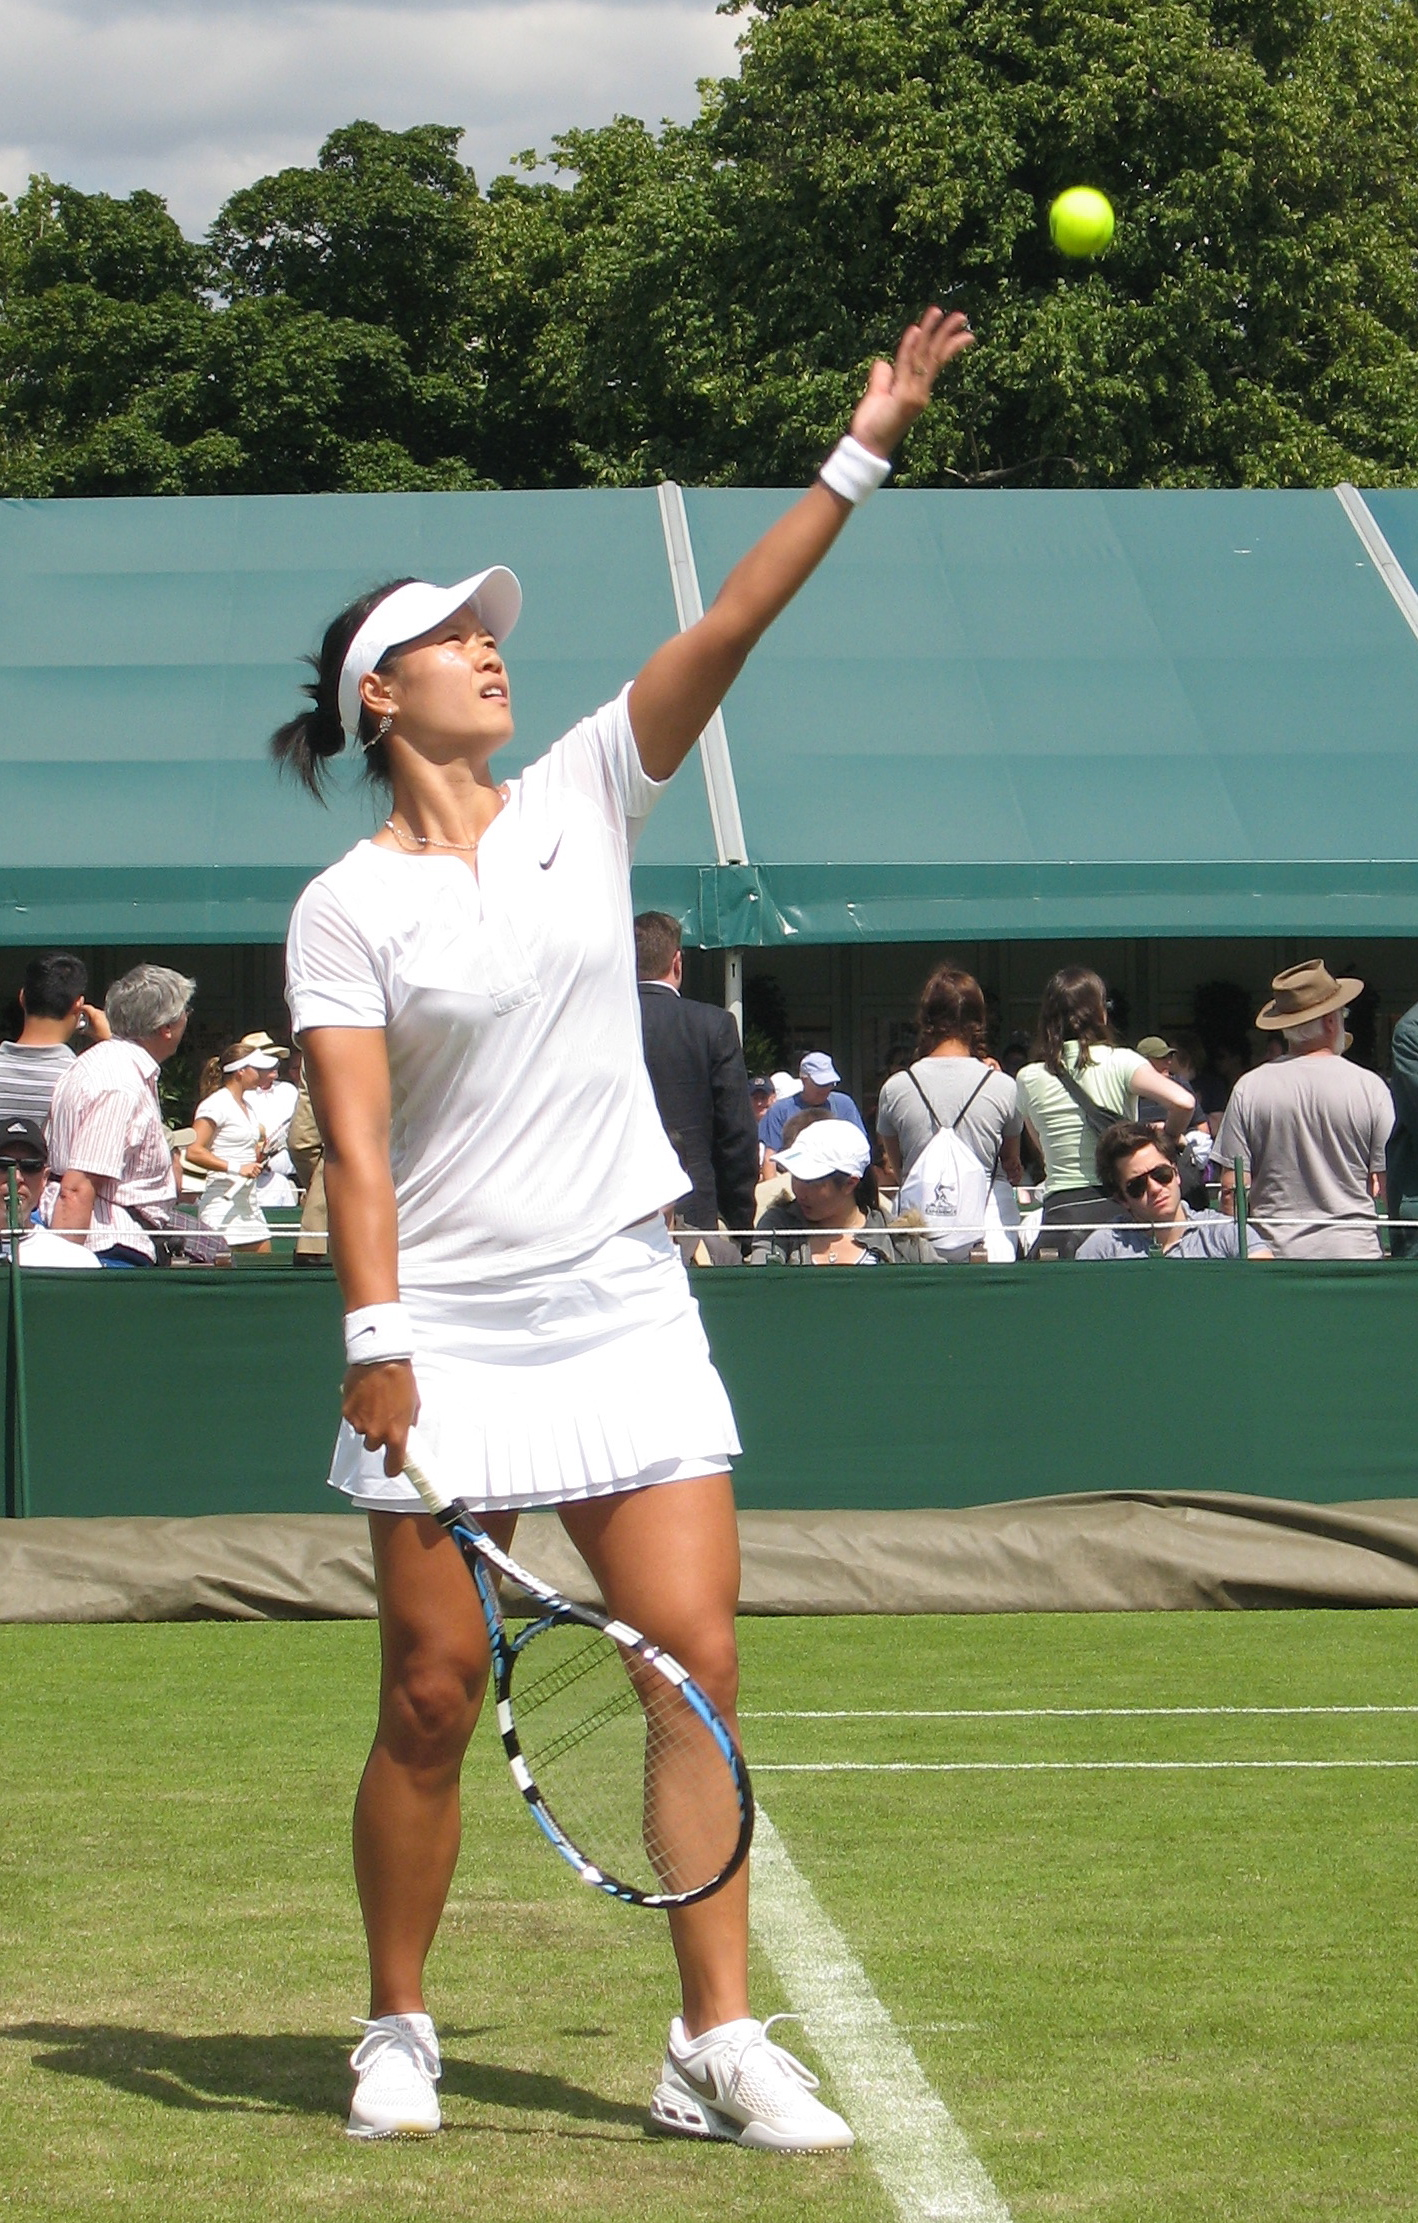 Li Na 2008 in Wimbledon. Foto: Chris Ng via Wikipedia.